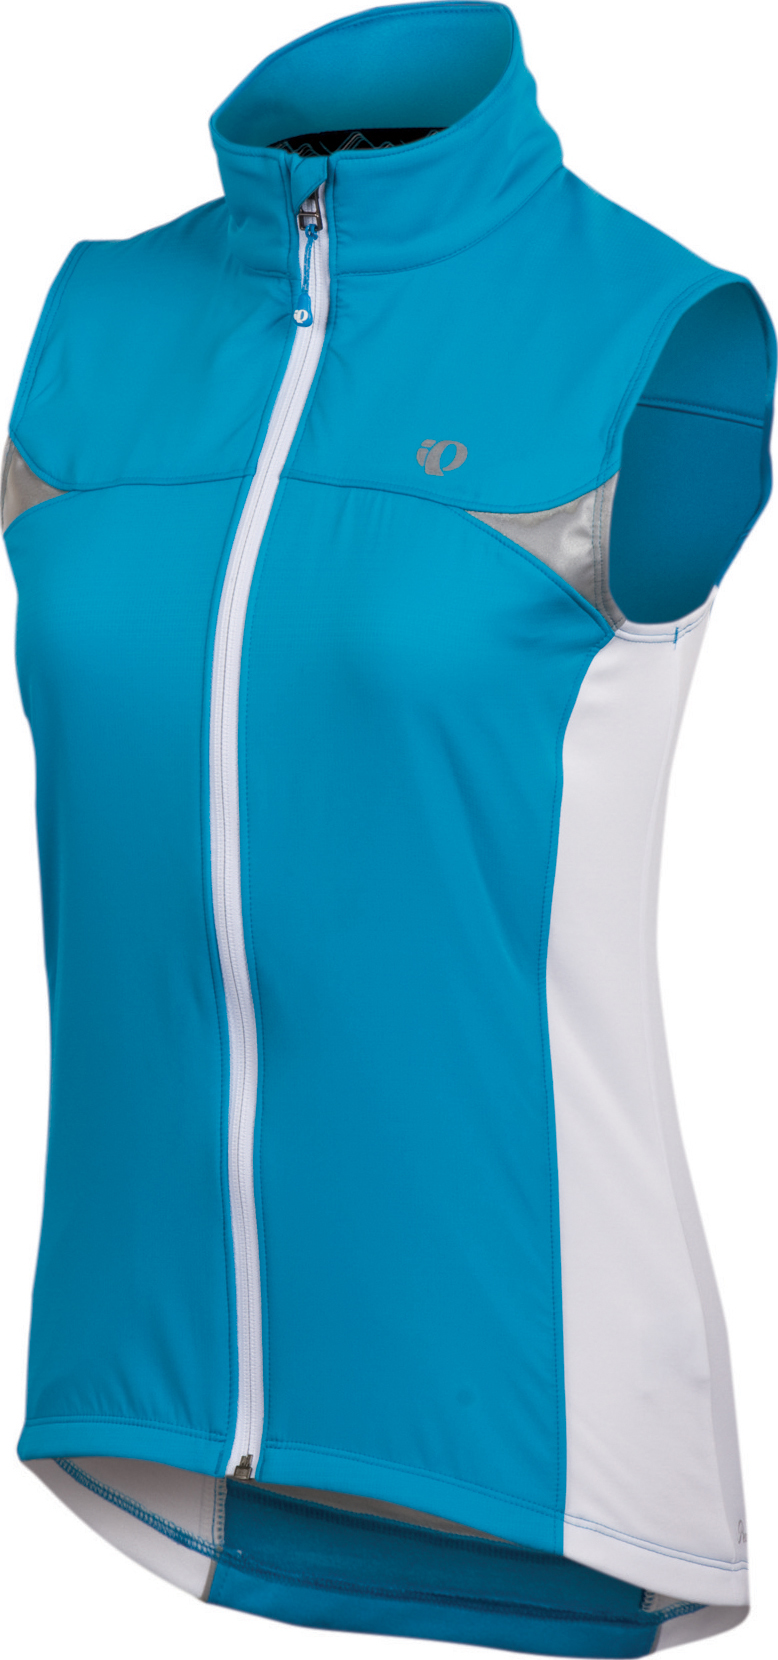 PEARL iZUMi W ELITE THERMAL BARRIER vesta*, L